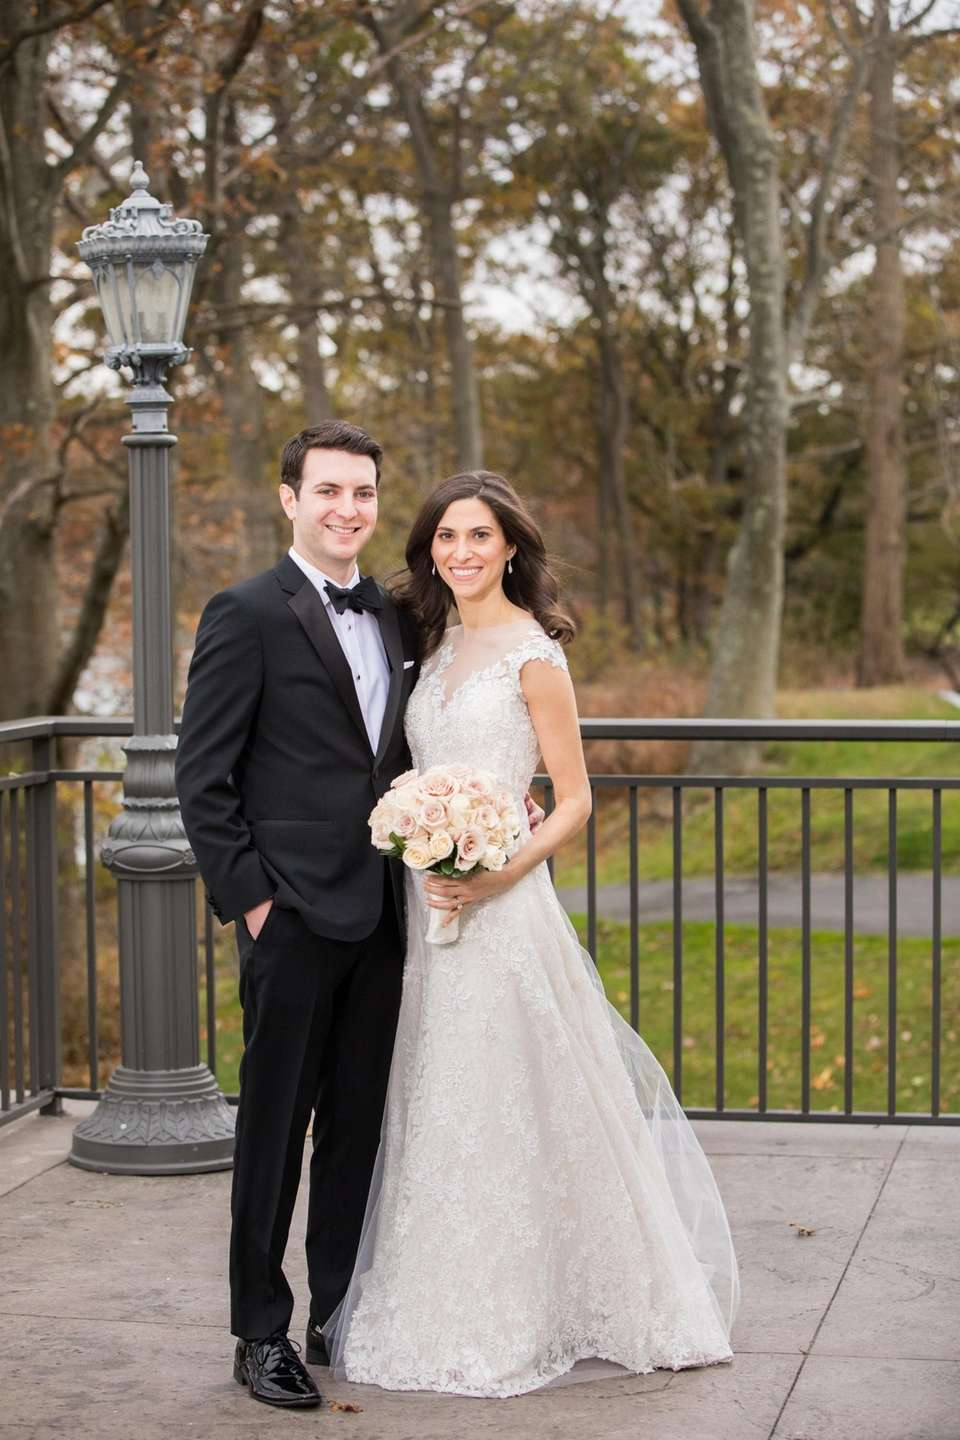 Stacie Tenenbaum and Jason Dubnoff were married on